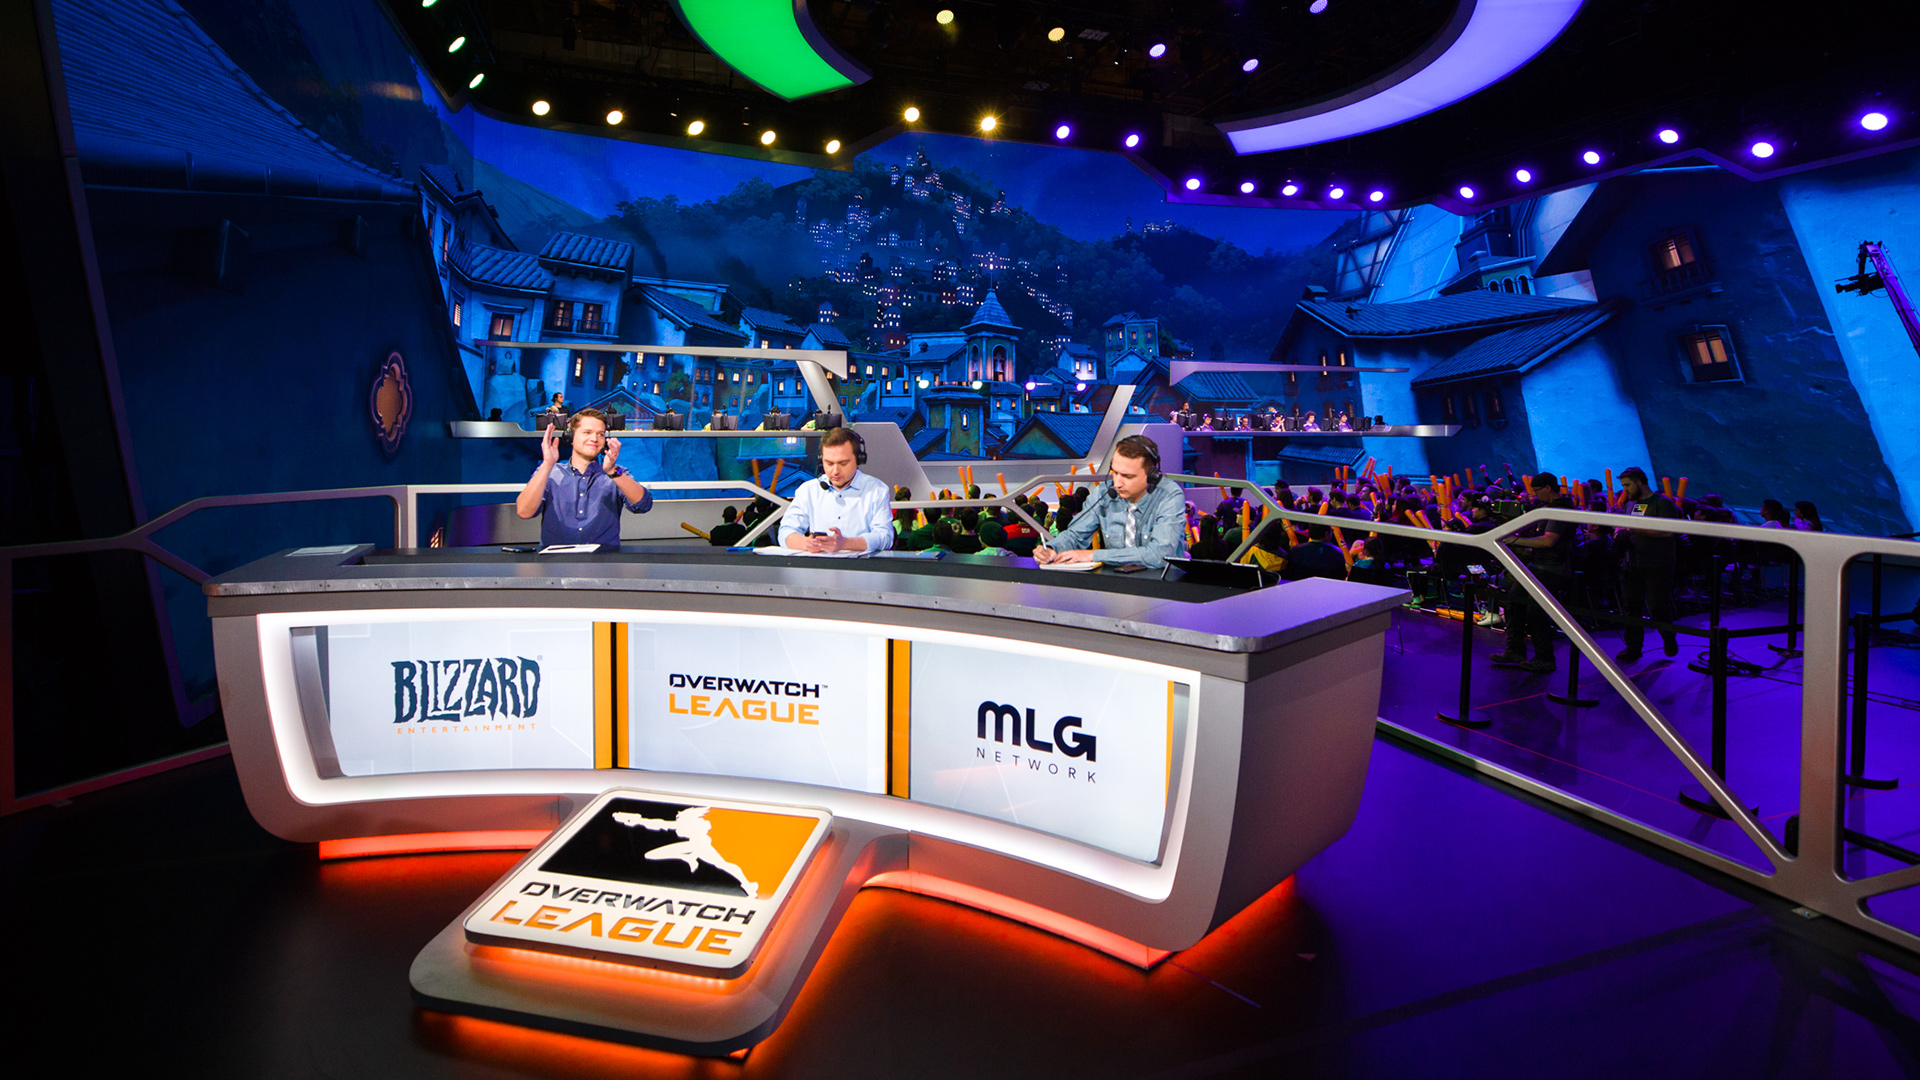 overwatch league preseason dorado